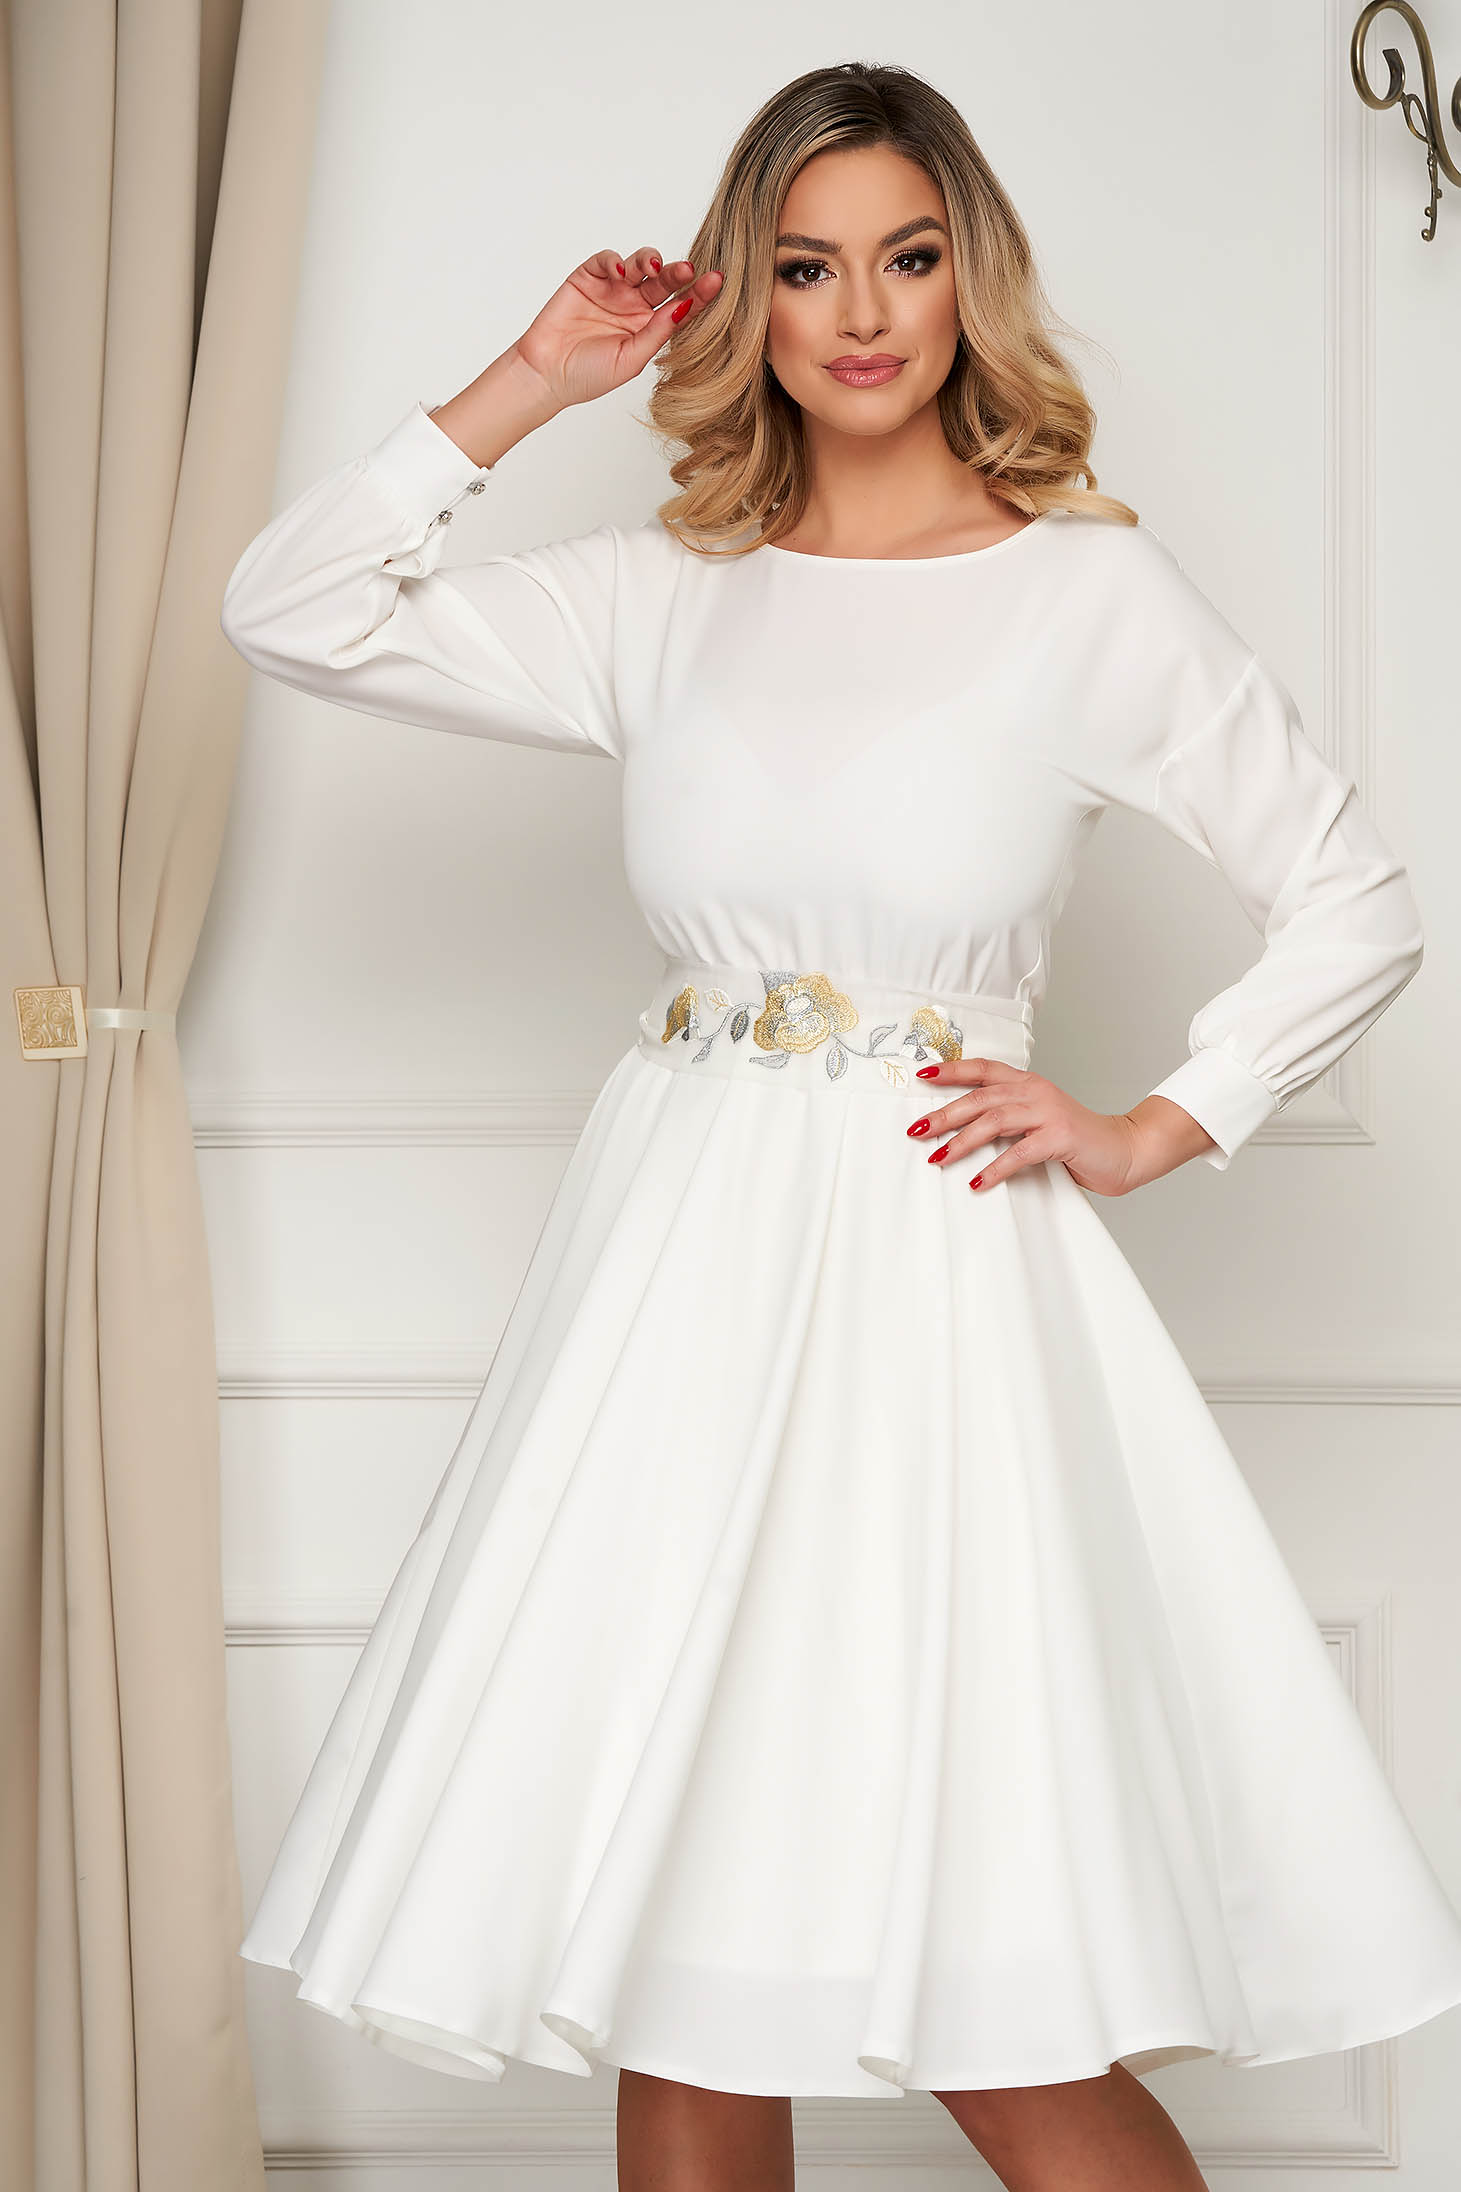 White occasional midi cloche dress StarShinerS from thin fabric accessorized with tied waistband